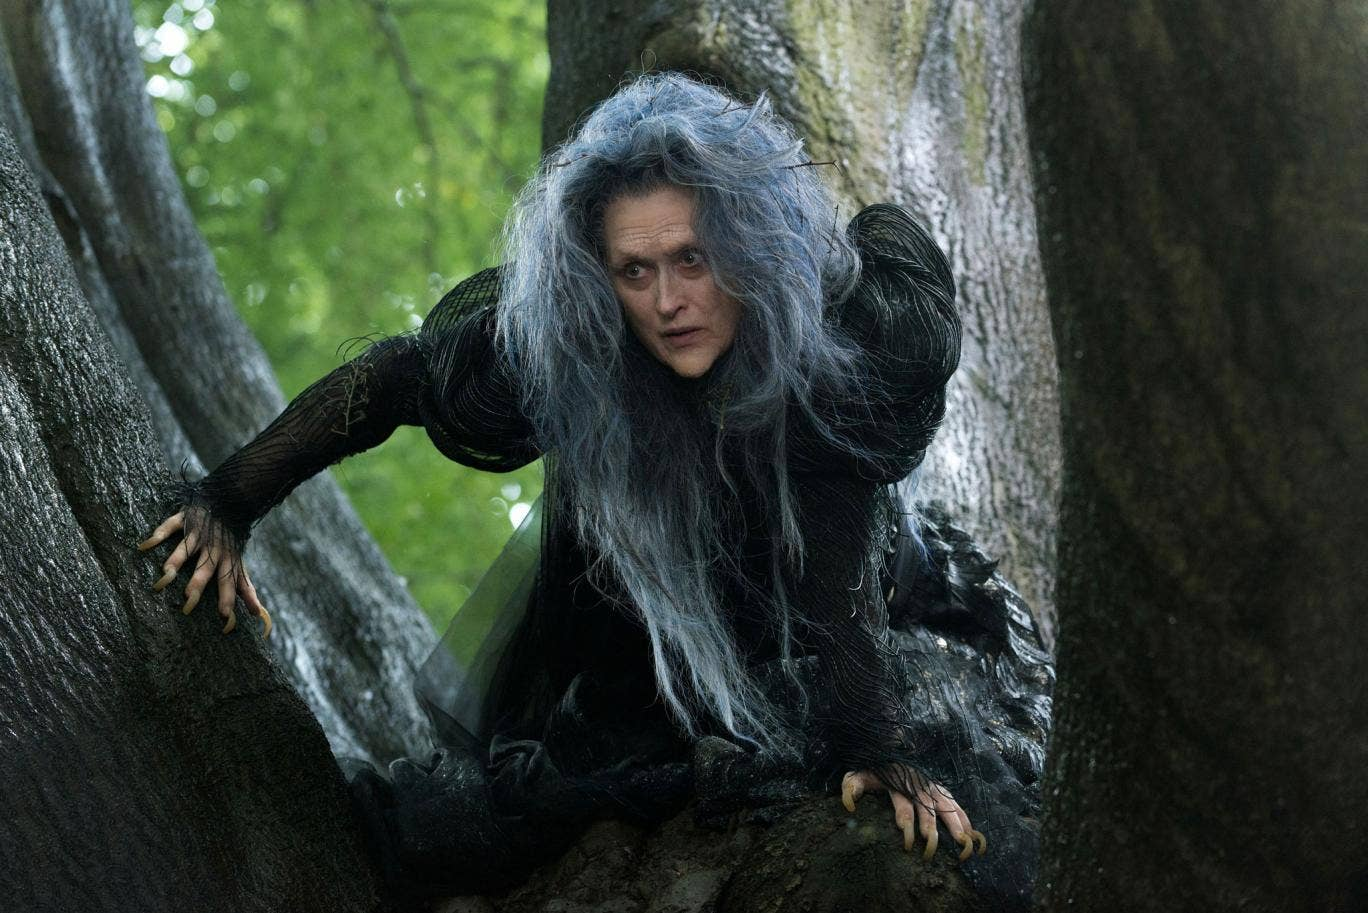 Meryl Streep stars as the Witch in Into The Woods